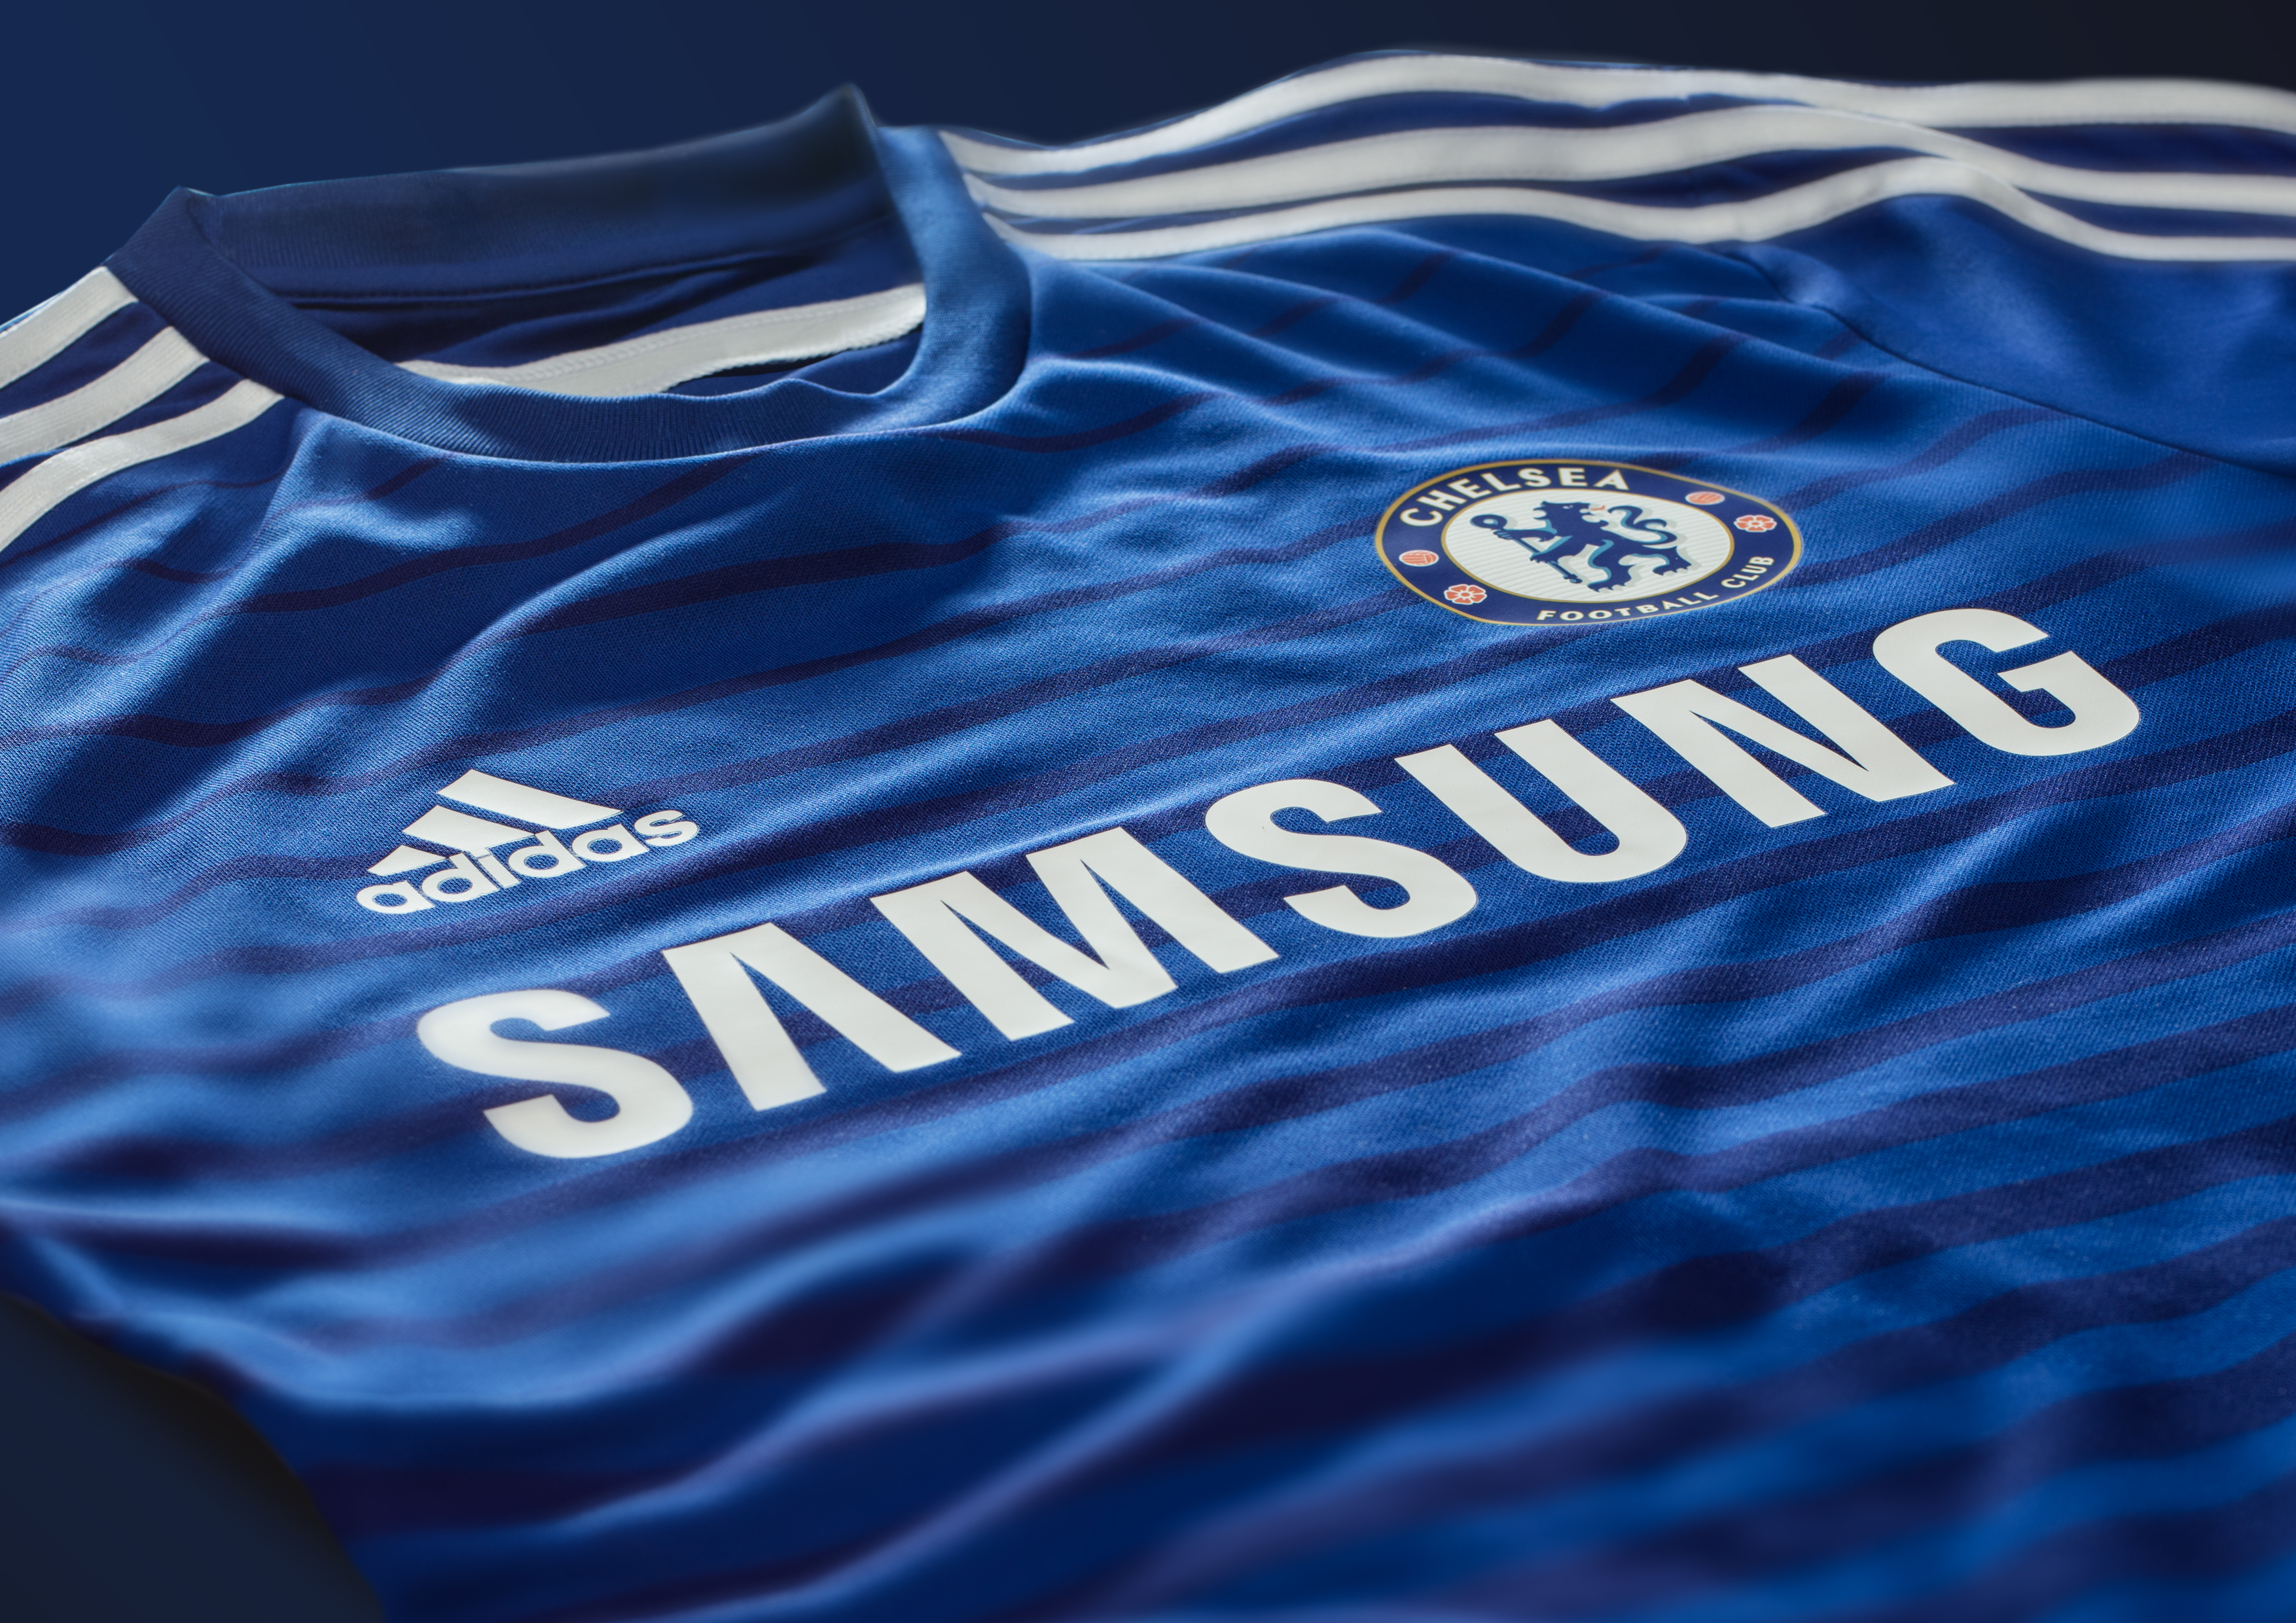 8c66b5728 Football kit release  adidas and Chelsea launch 2014 15 home kit ...